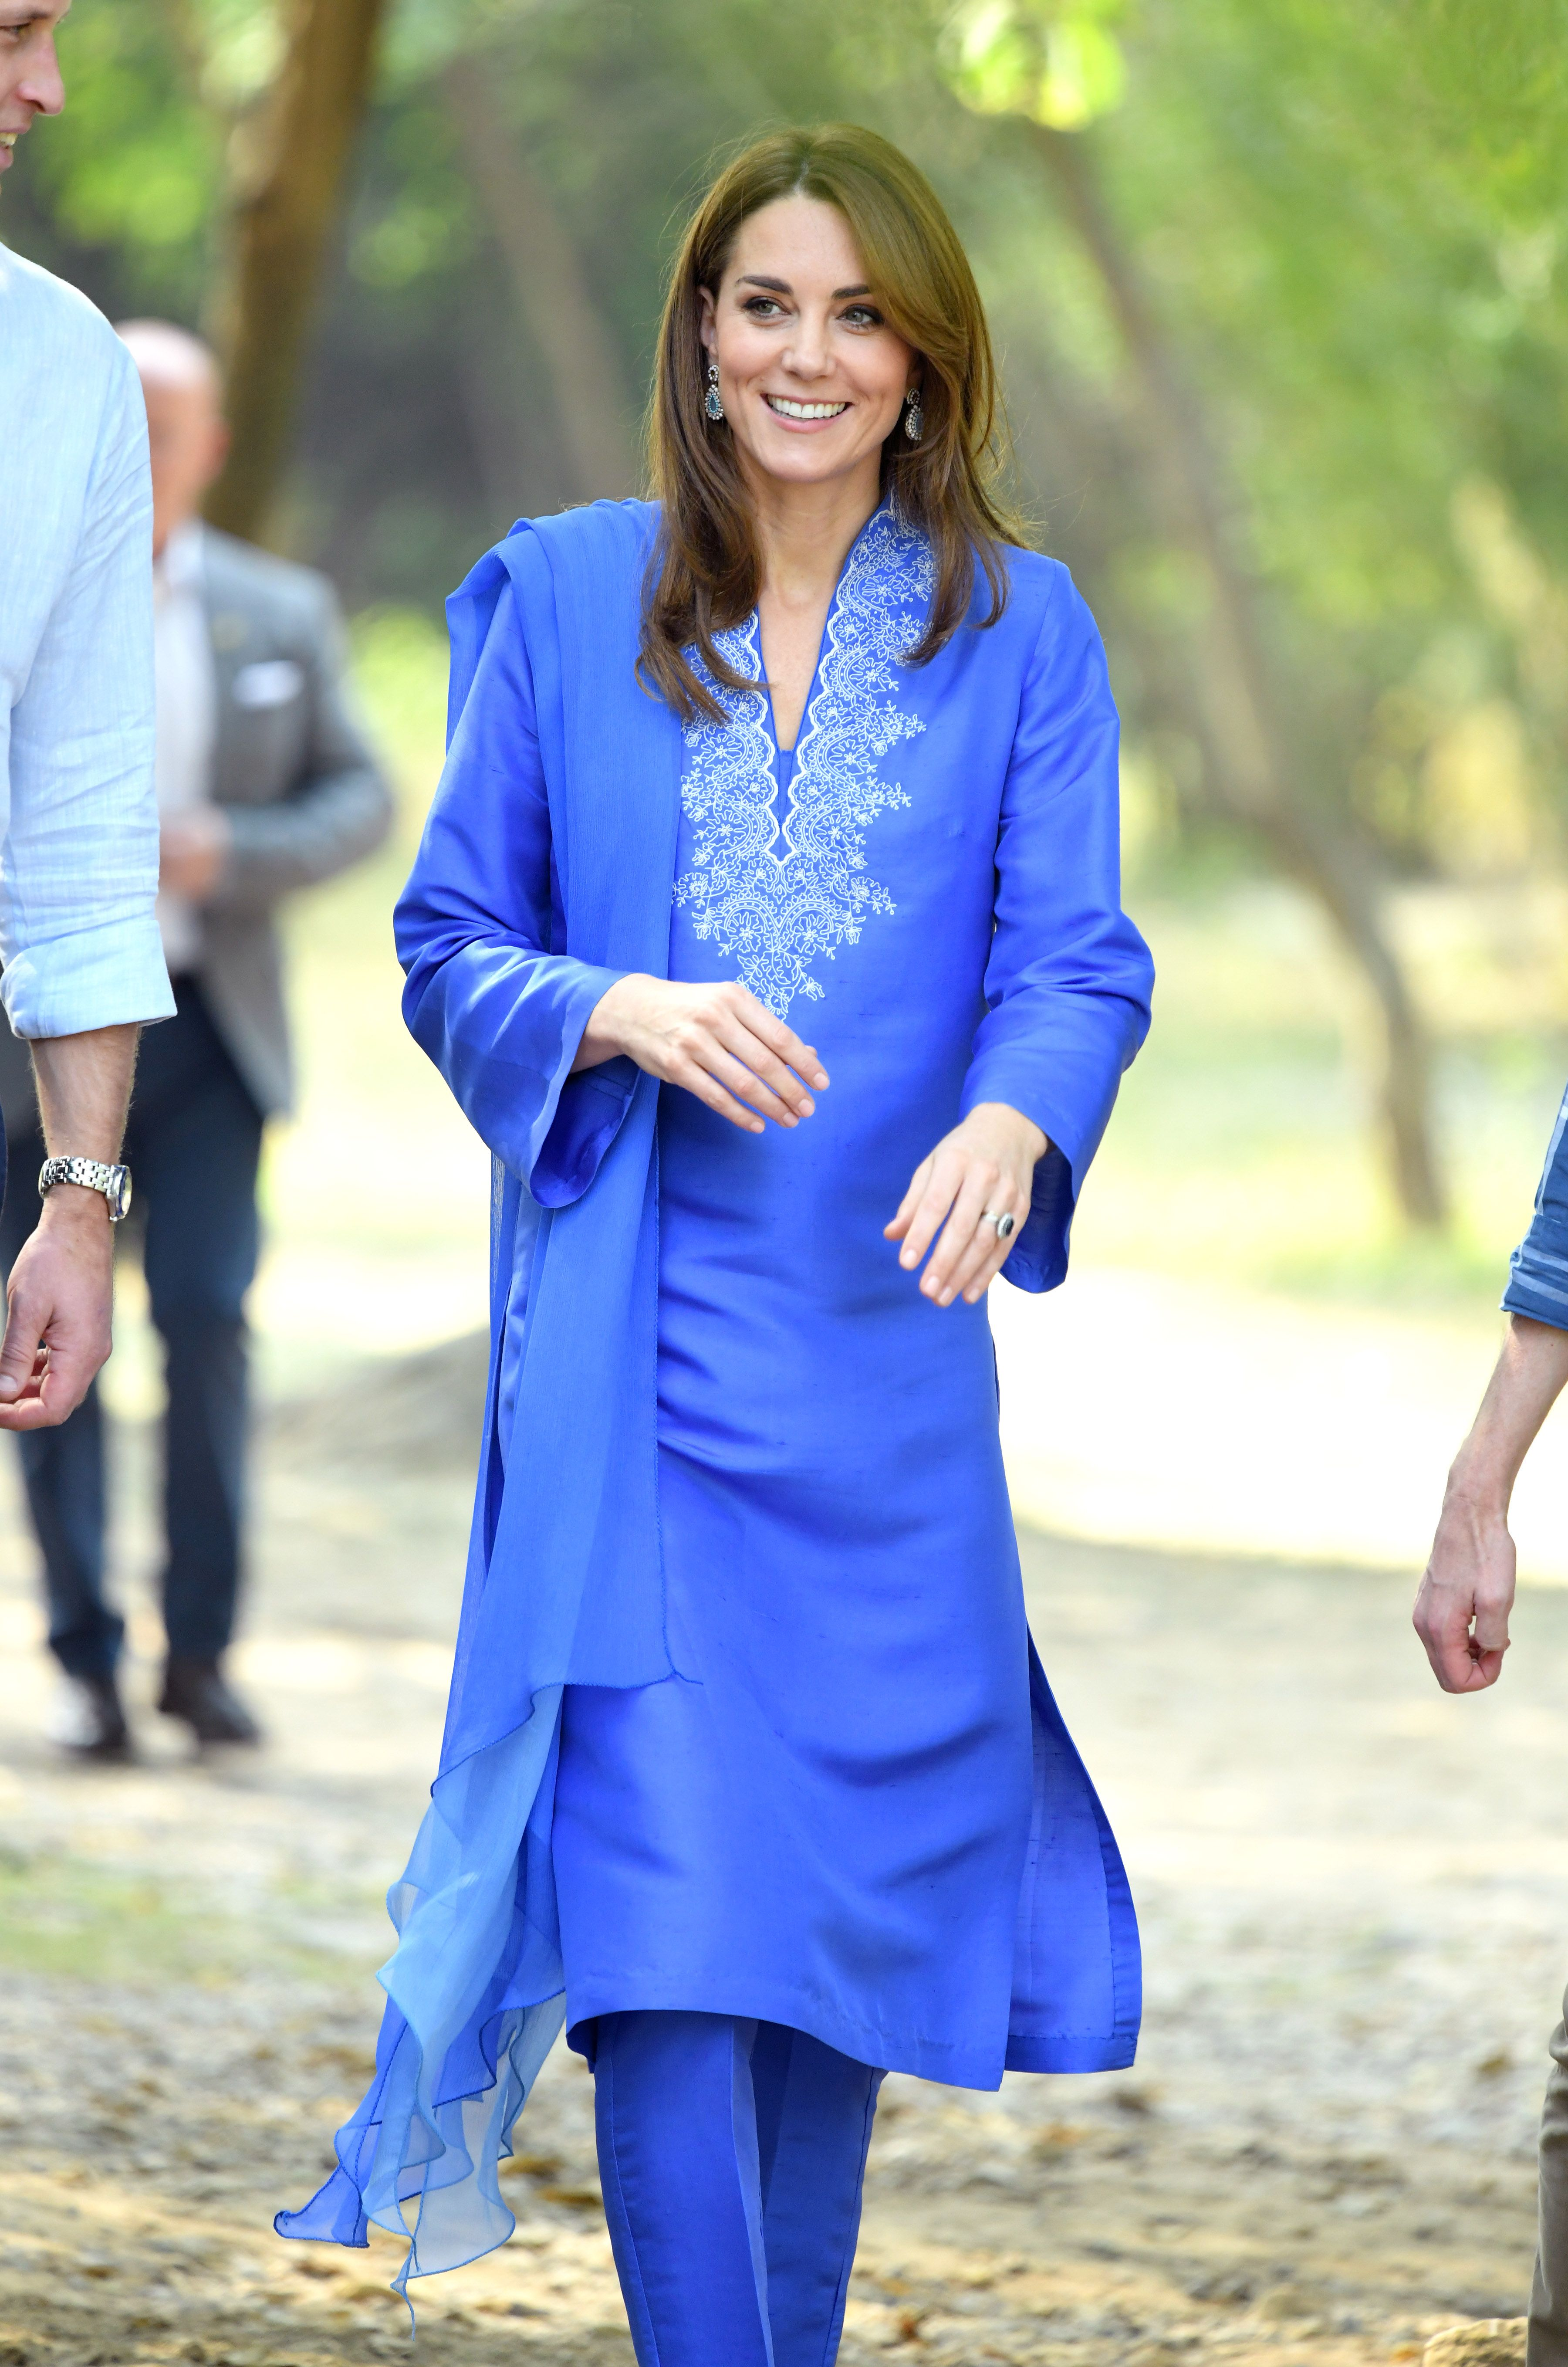 The Duchess of Cambridge wows in blue for first official visit of Pakistan tour